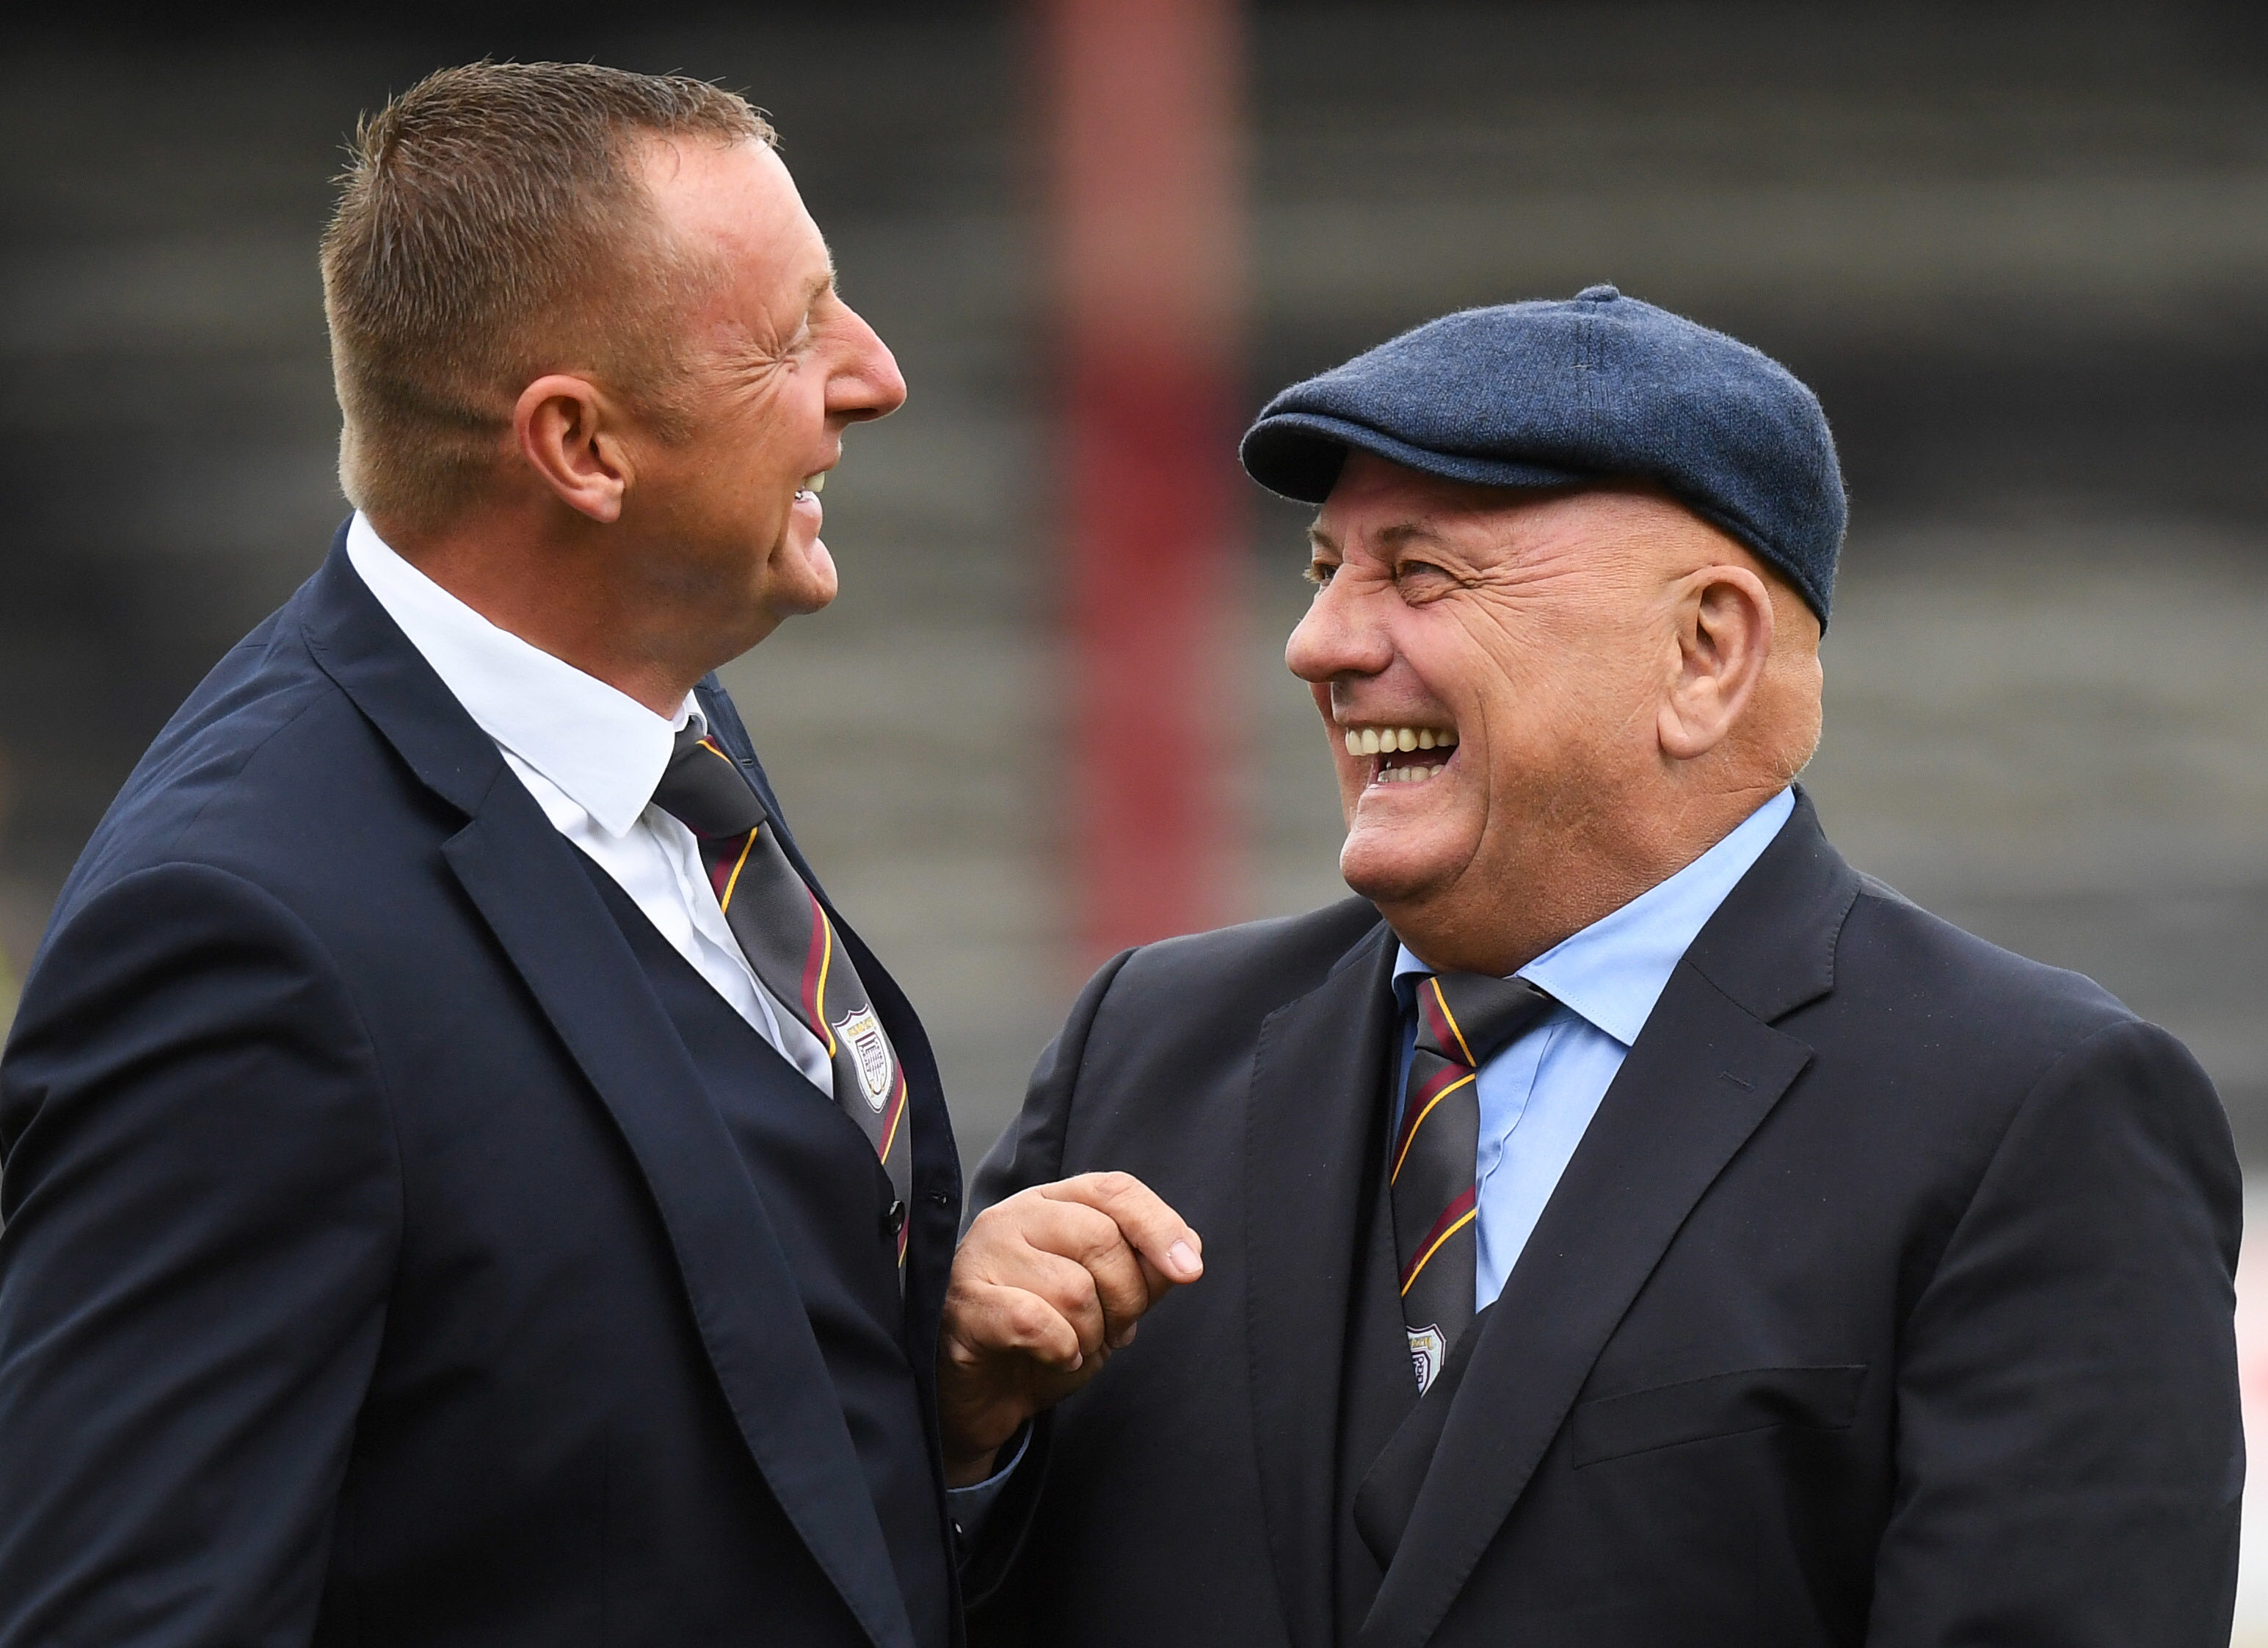 Big Rab (left) shares a joke with Arbroath's Manager of the Year nominee, Dick Campbell.